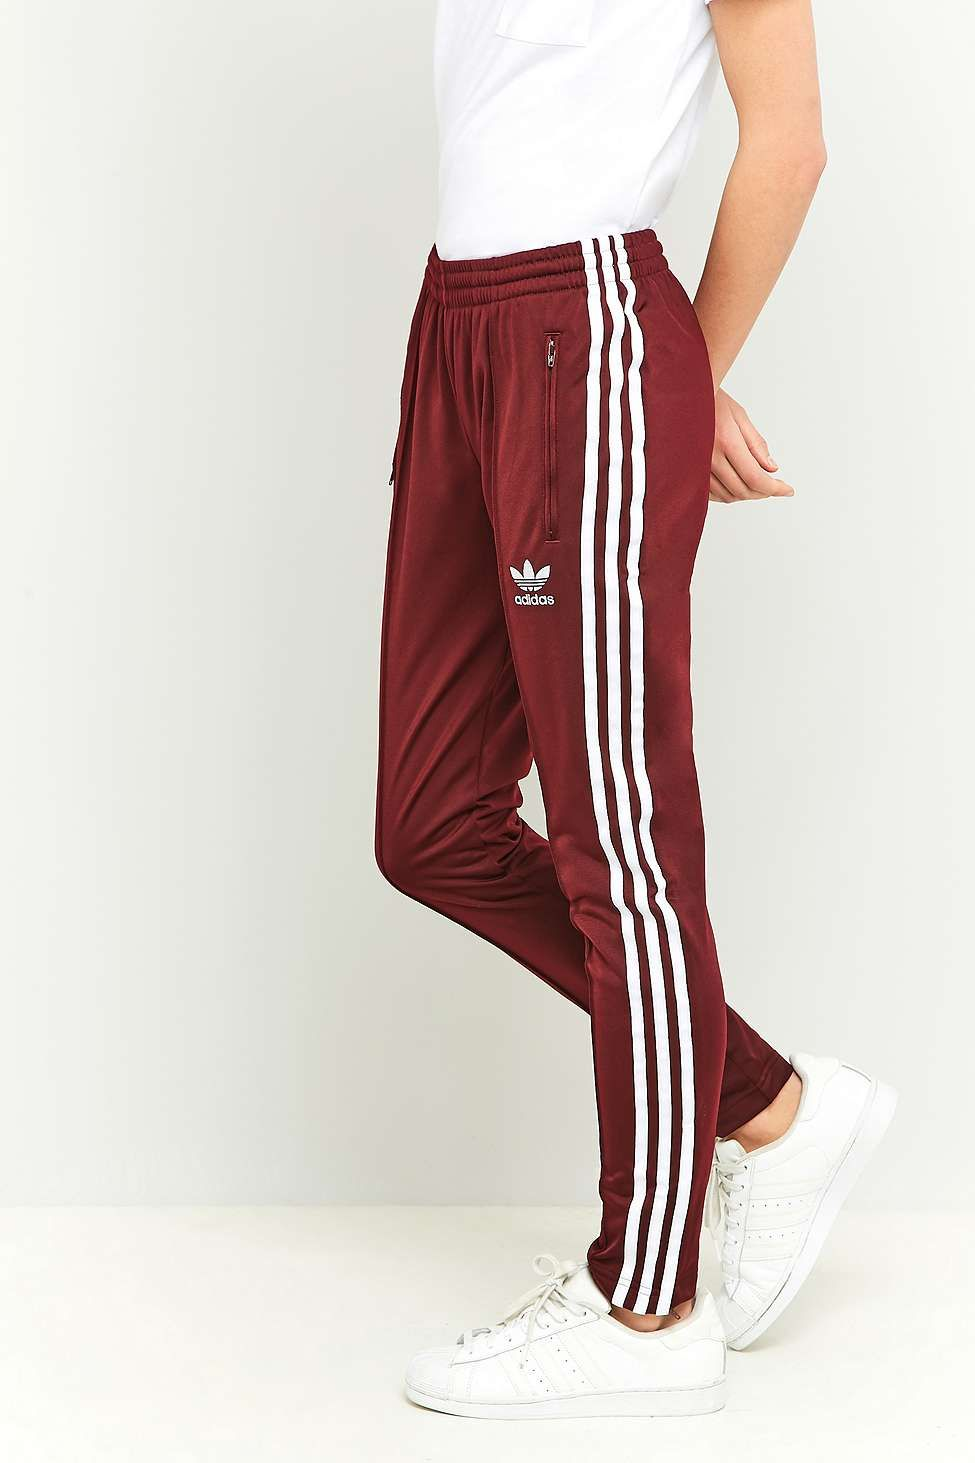 2f0c7d7318e adidas Originals 3 Stripe Slim-Fit Maroon Tracksuit Bottoms - Urban  Outfitters